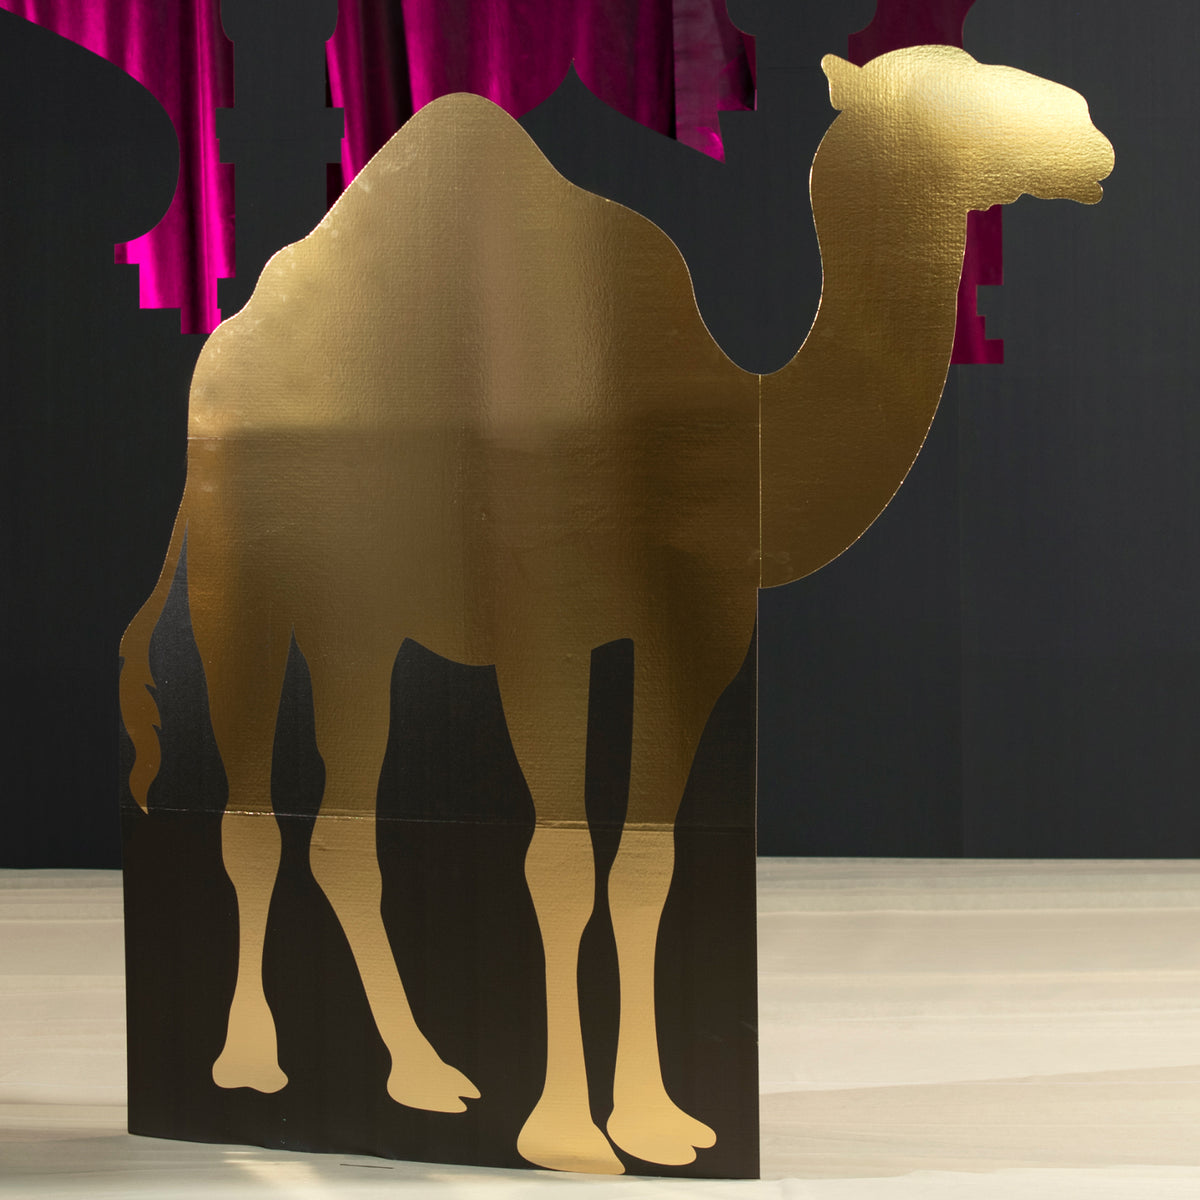 6 ft. 2 in. Right Facing Gold Camel Silhouette Standee